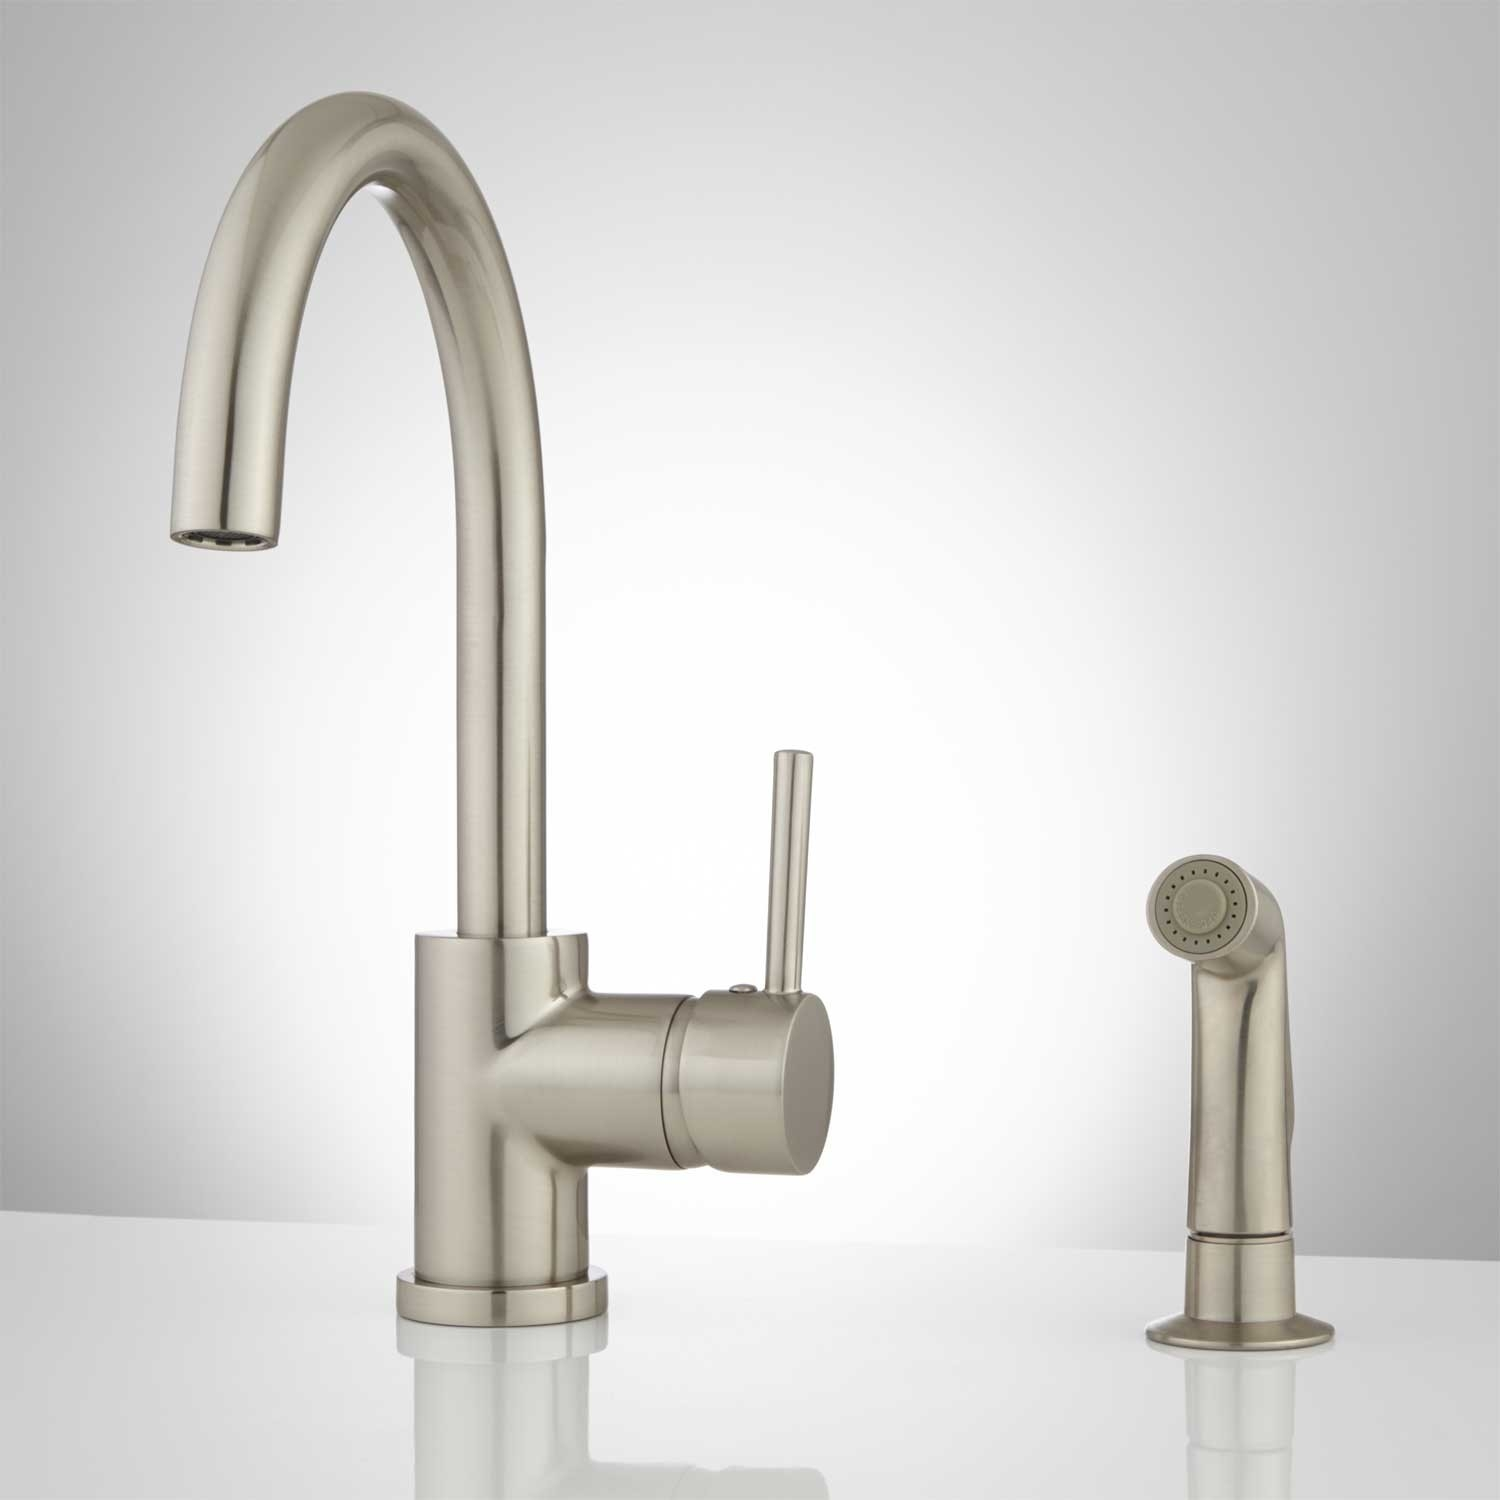 Ideas, kitchen single handle kitchen faucet single handle kitchen with size 1500 x 1500  .